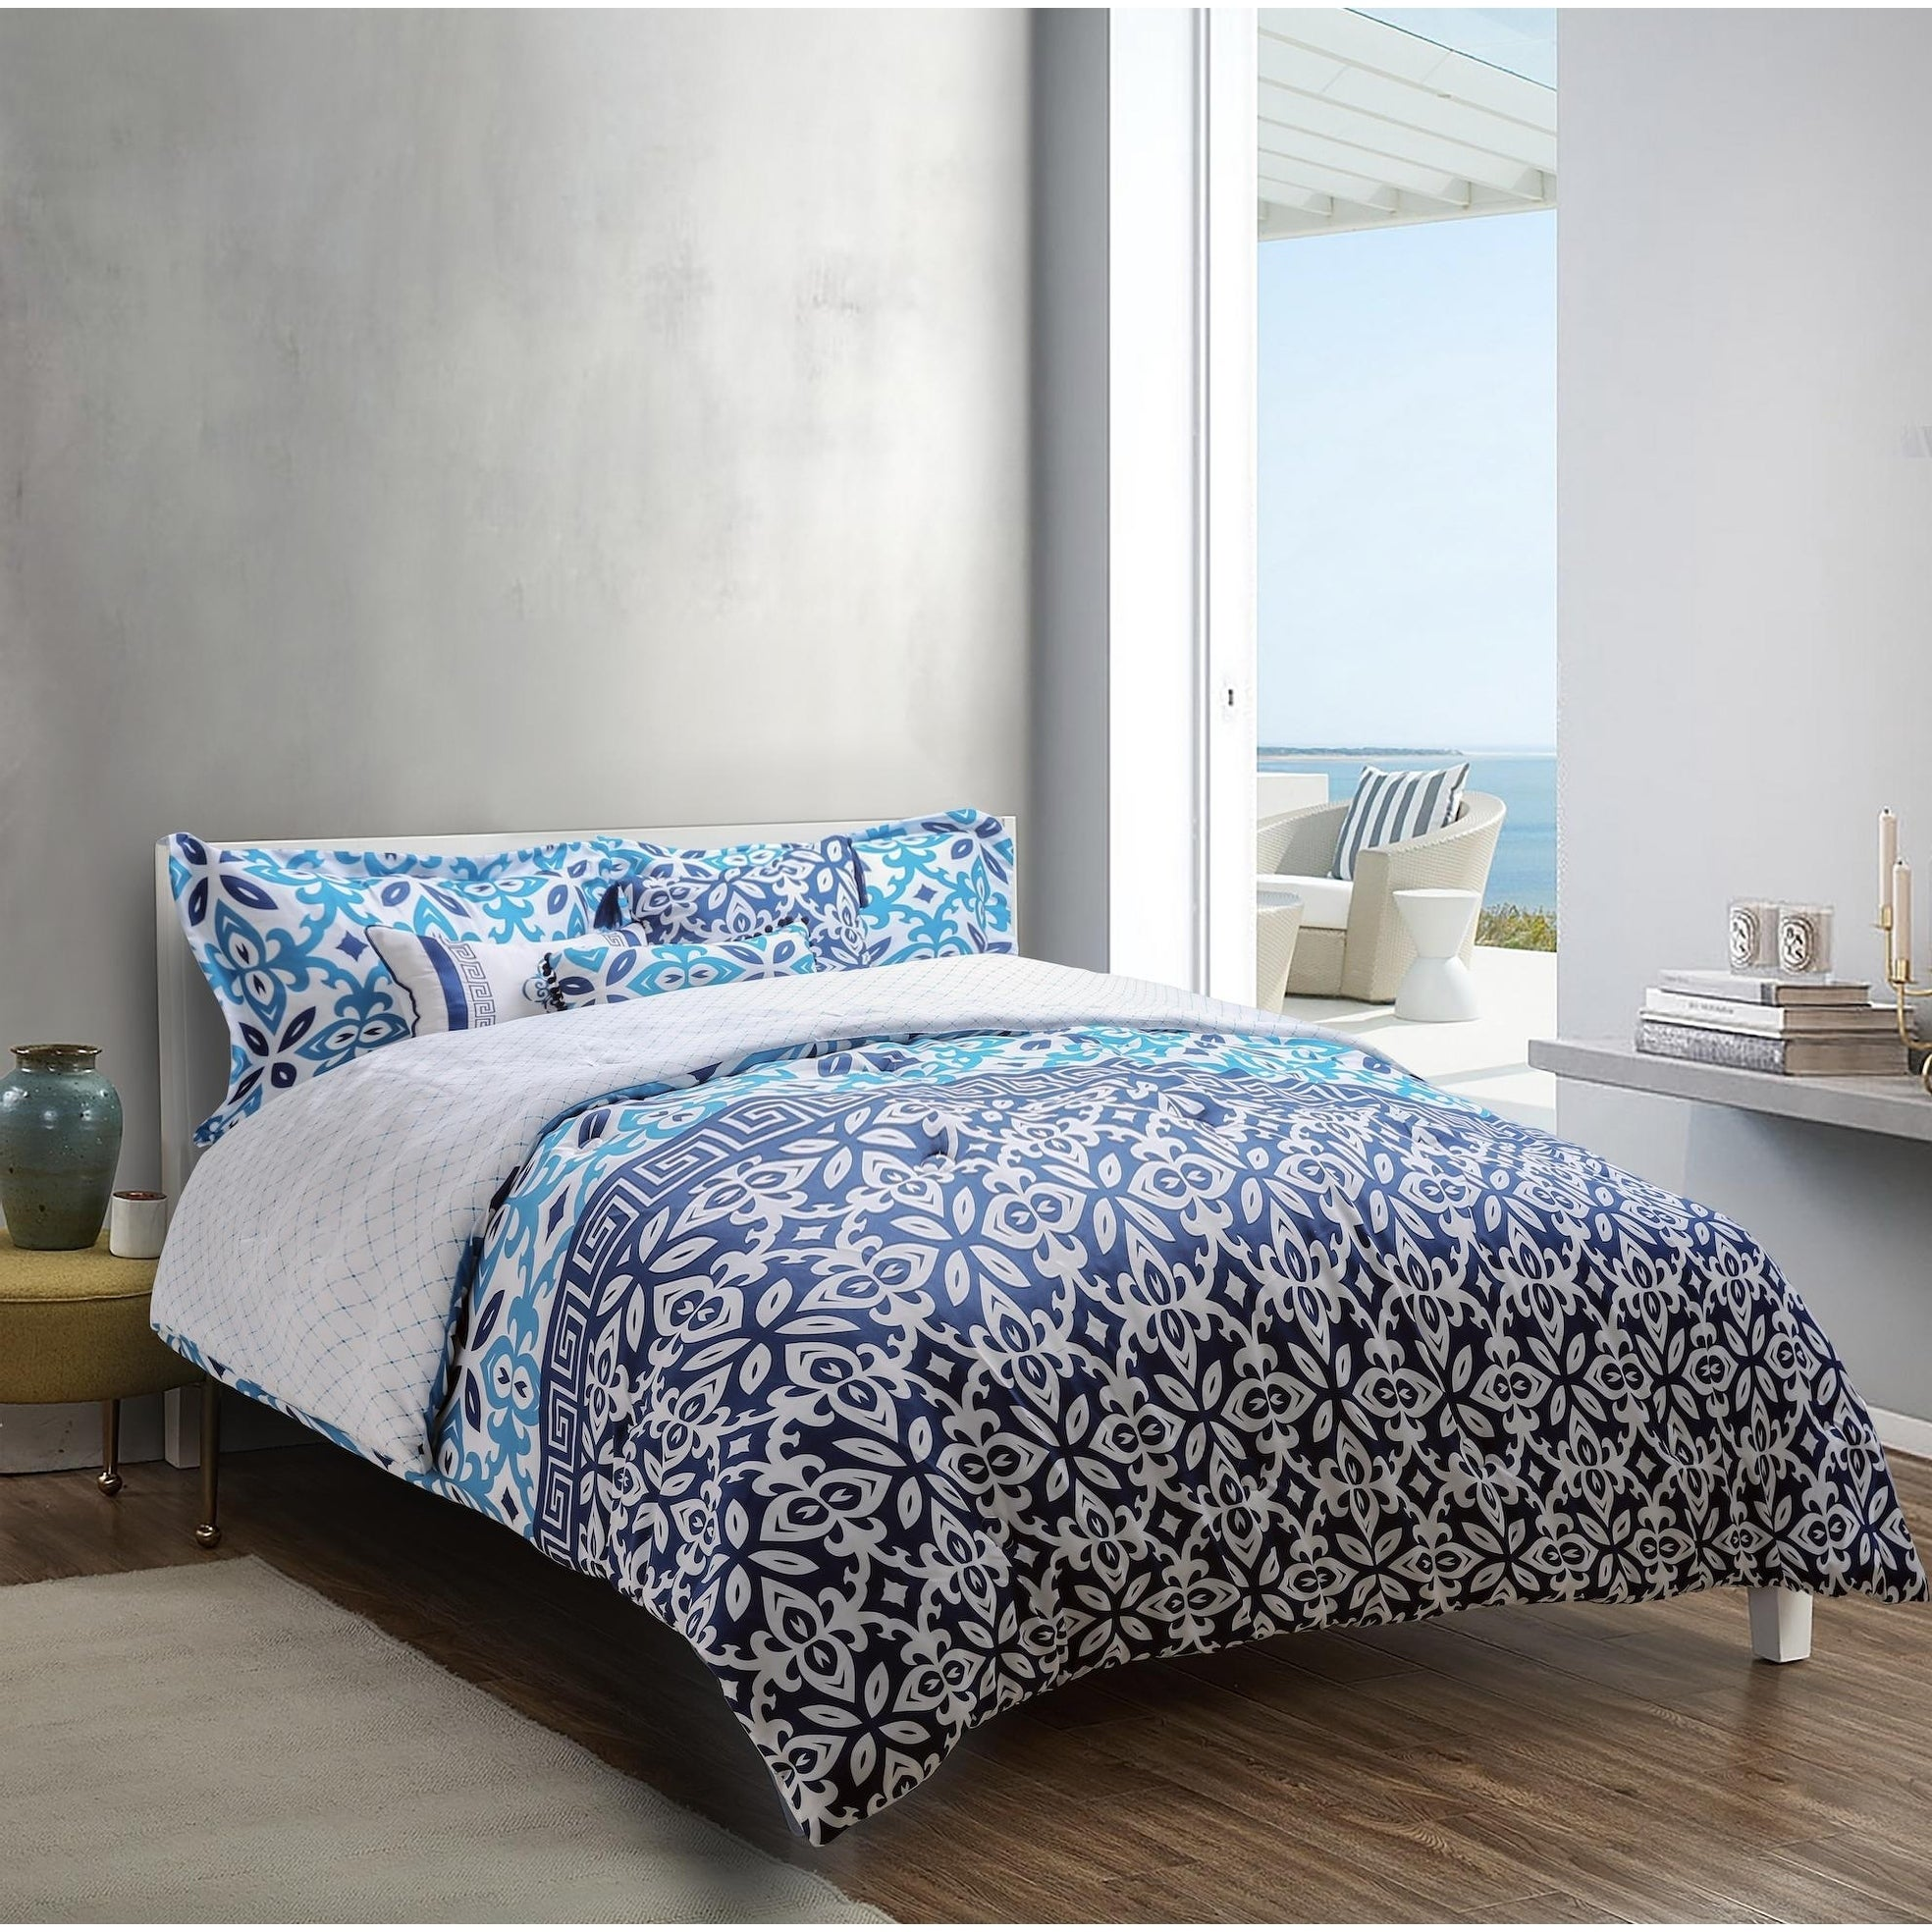 Explore Brand Mykonos Printed 6 Piece Comforter Set In Deep Blue Medium Blue White Grecian Tile Design Overstock 28014141